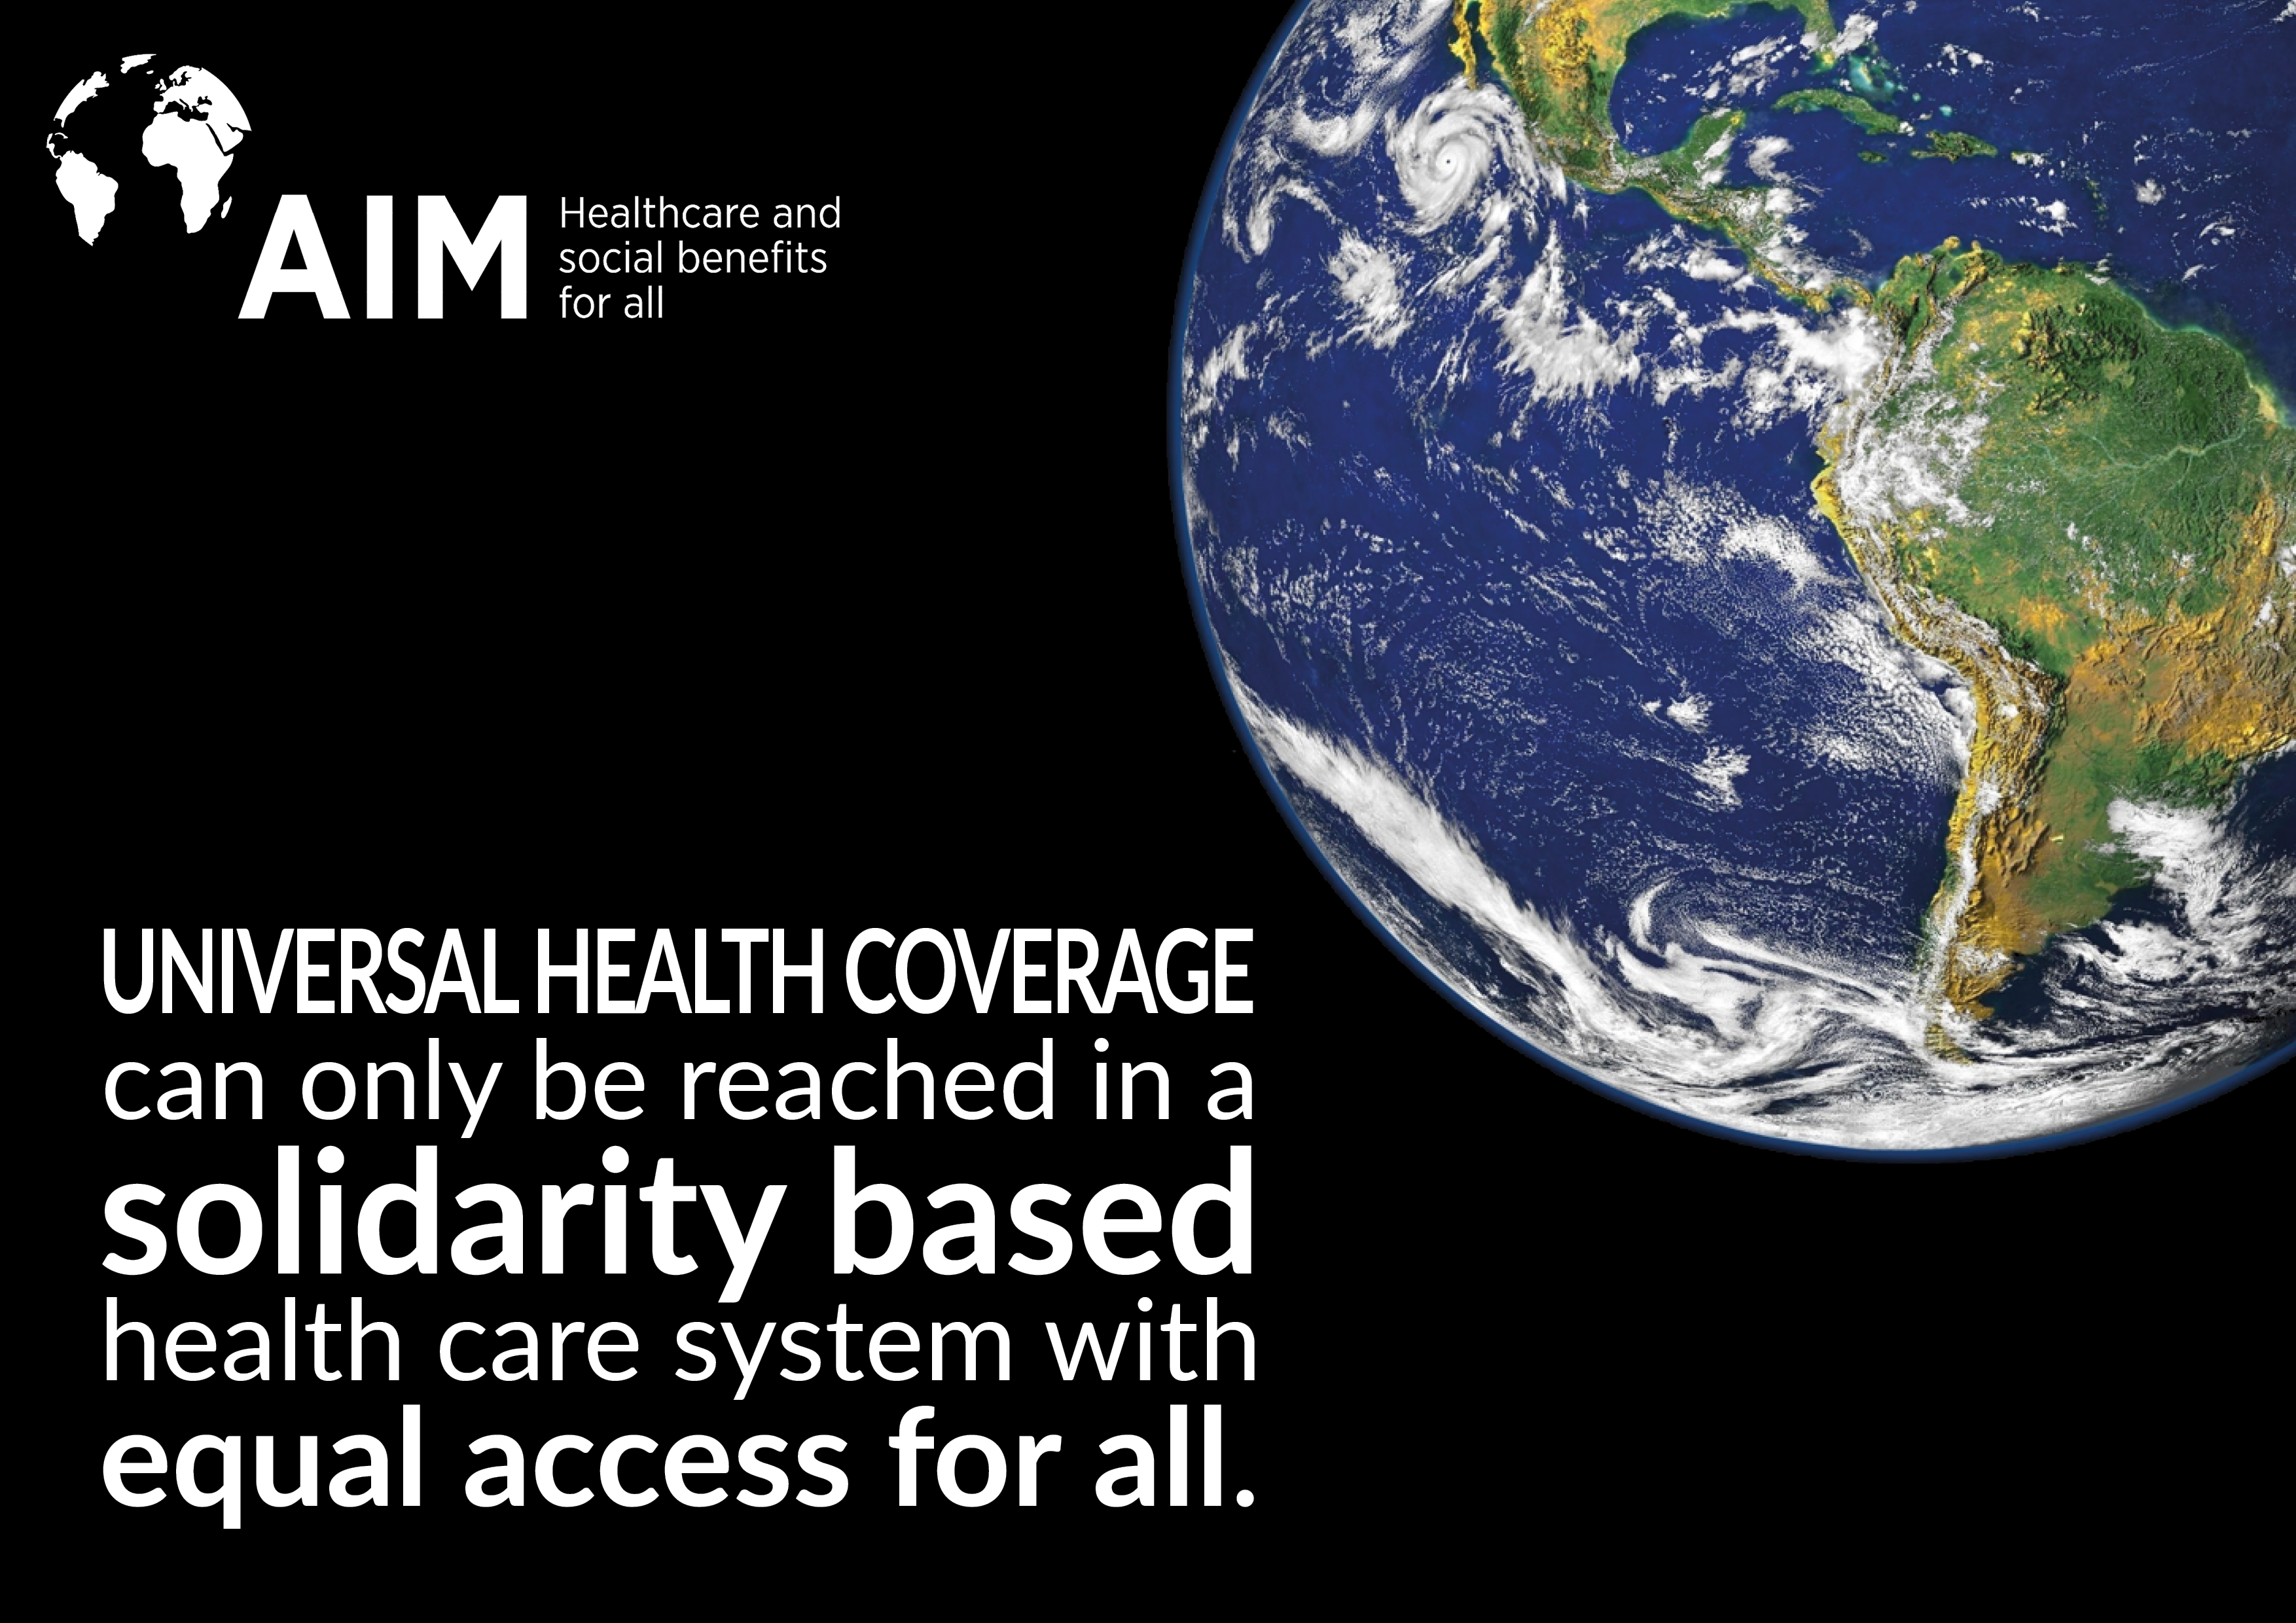 Mutuals and non-profit healthcare payers play a vital role